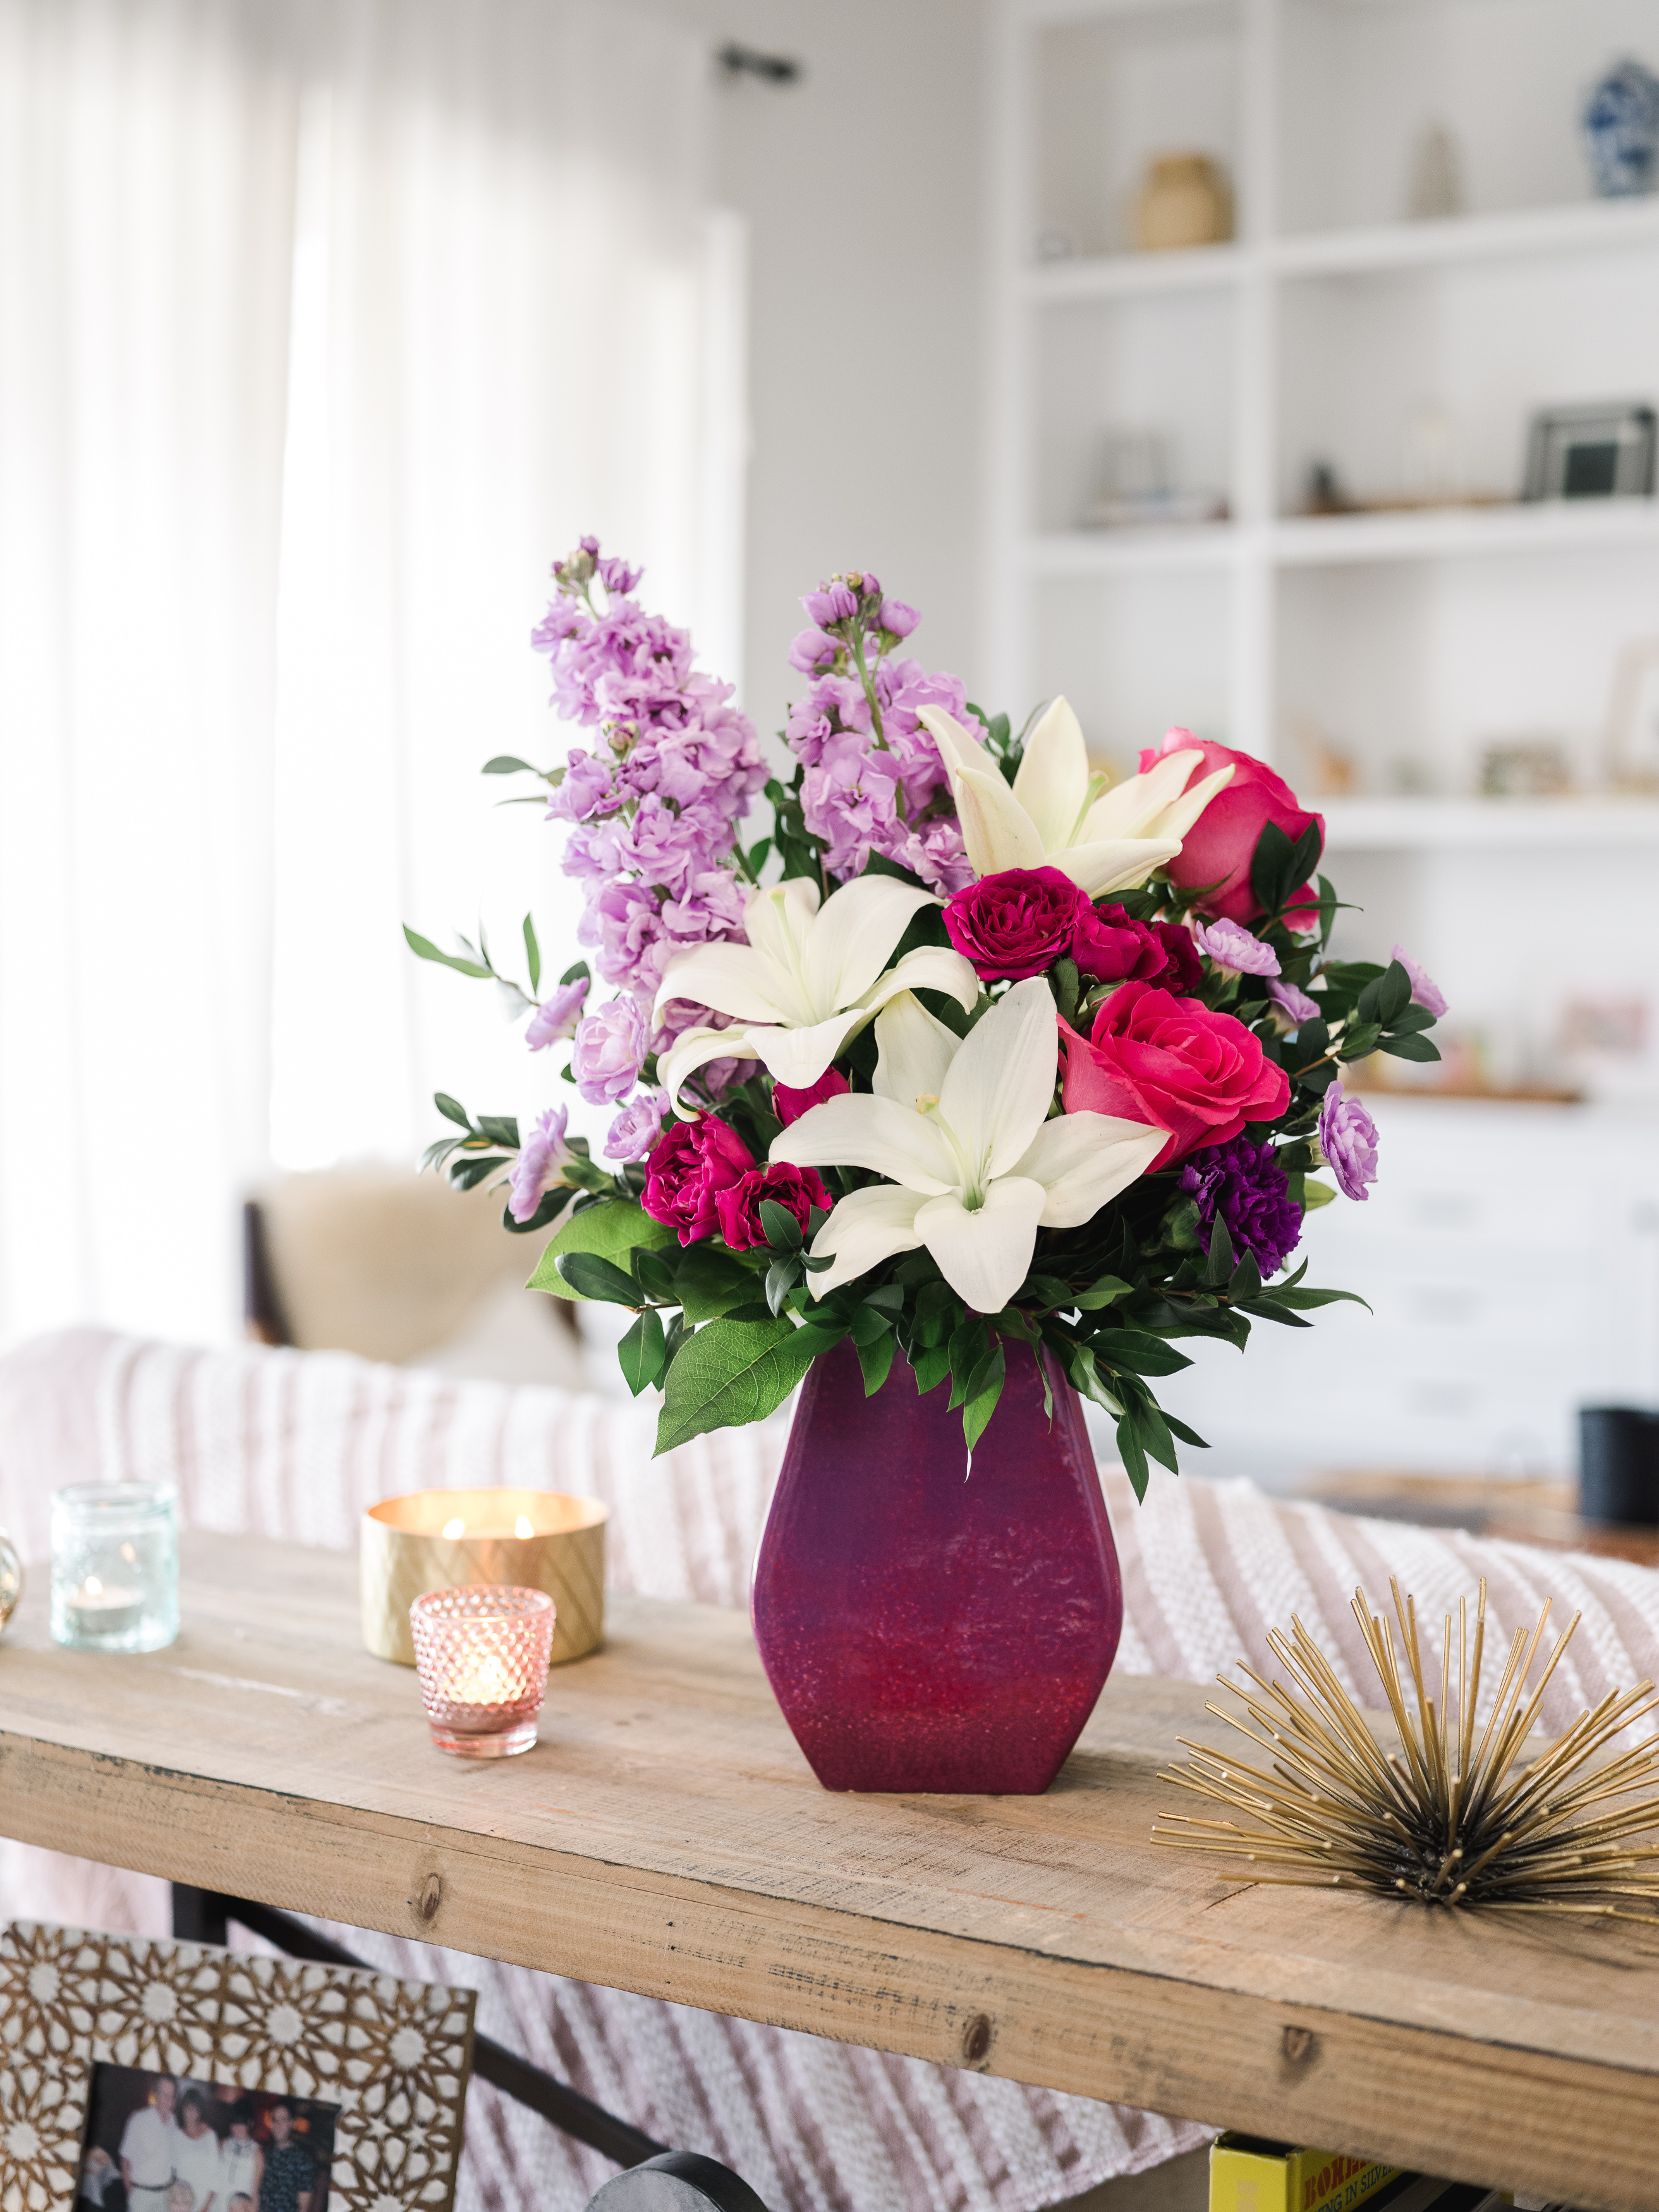 White lilies, pink roses, purple statice, and more fill a vibrant purple vase on a coffee table with trinkets